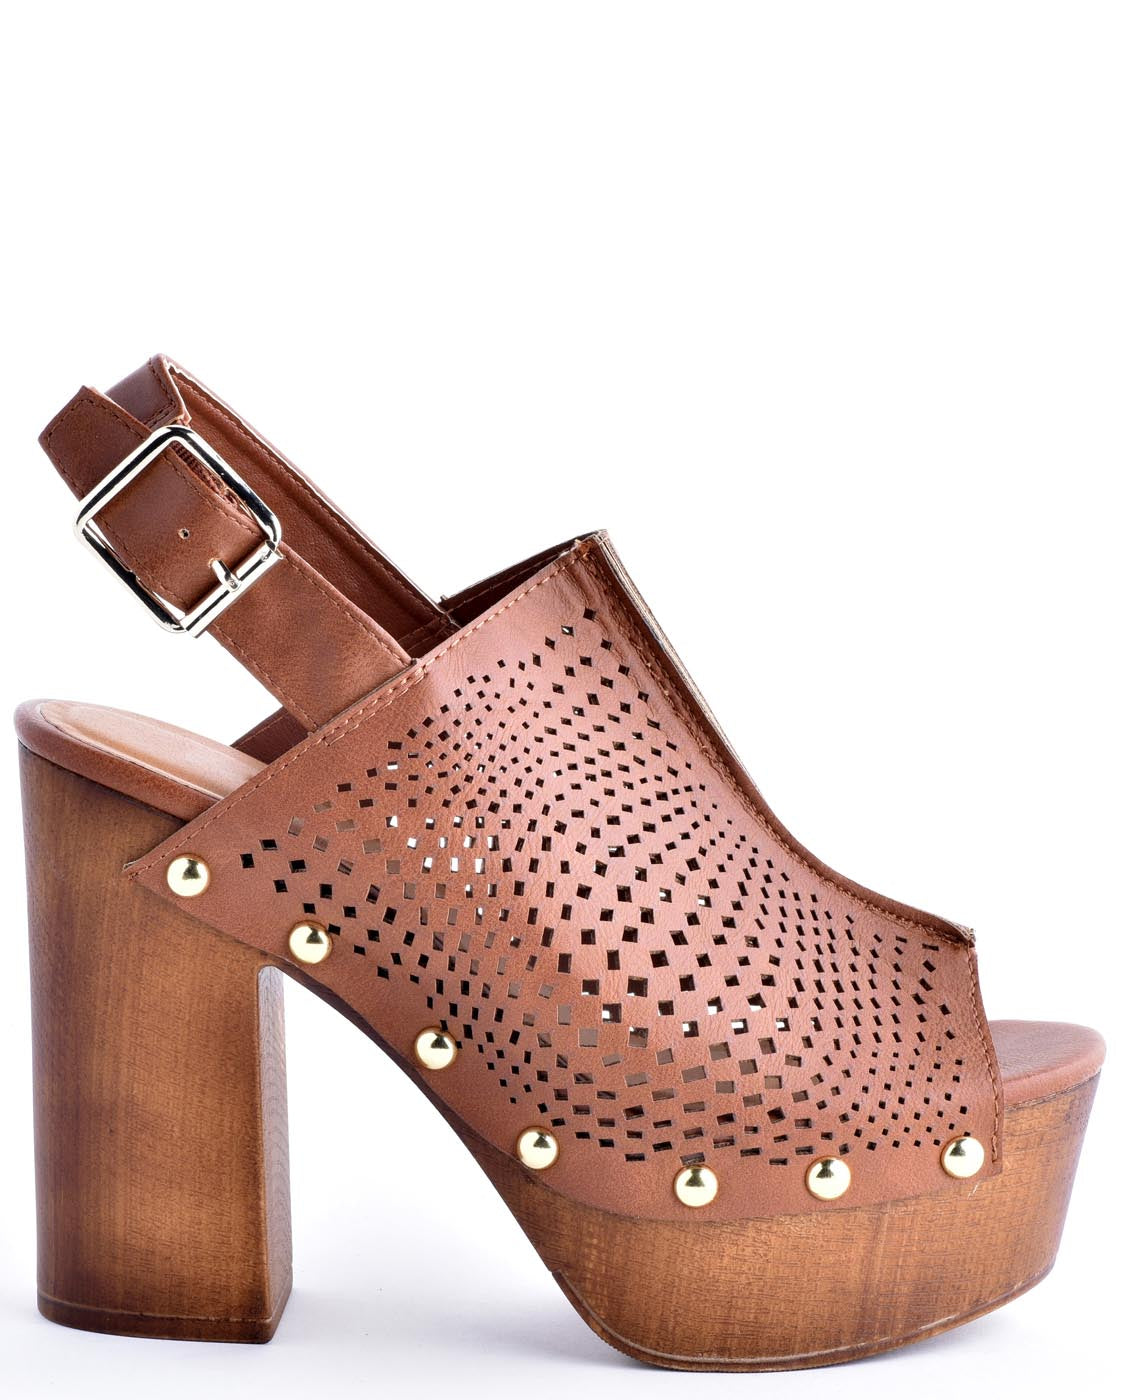 70s Style Wooden Slingback Leather